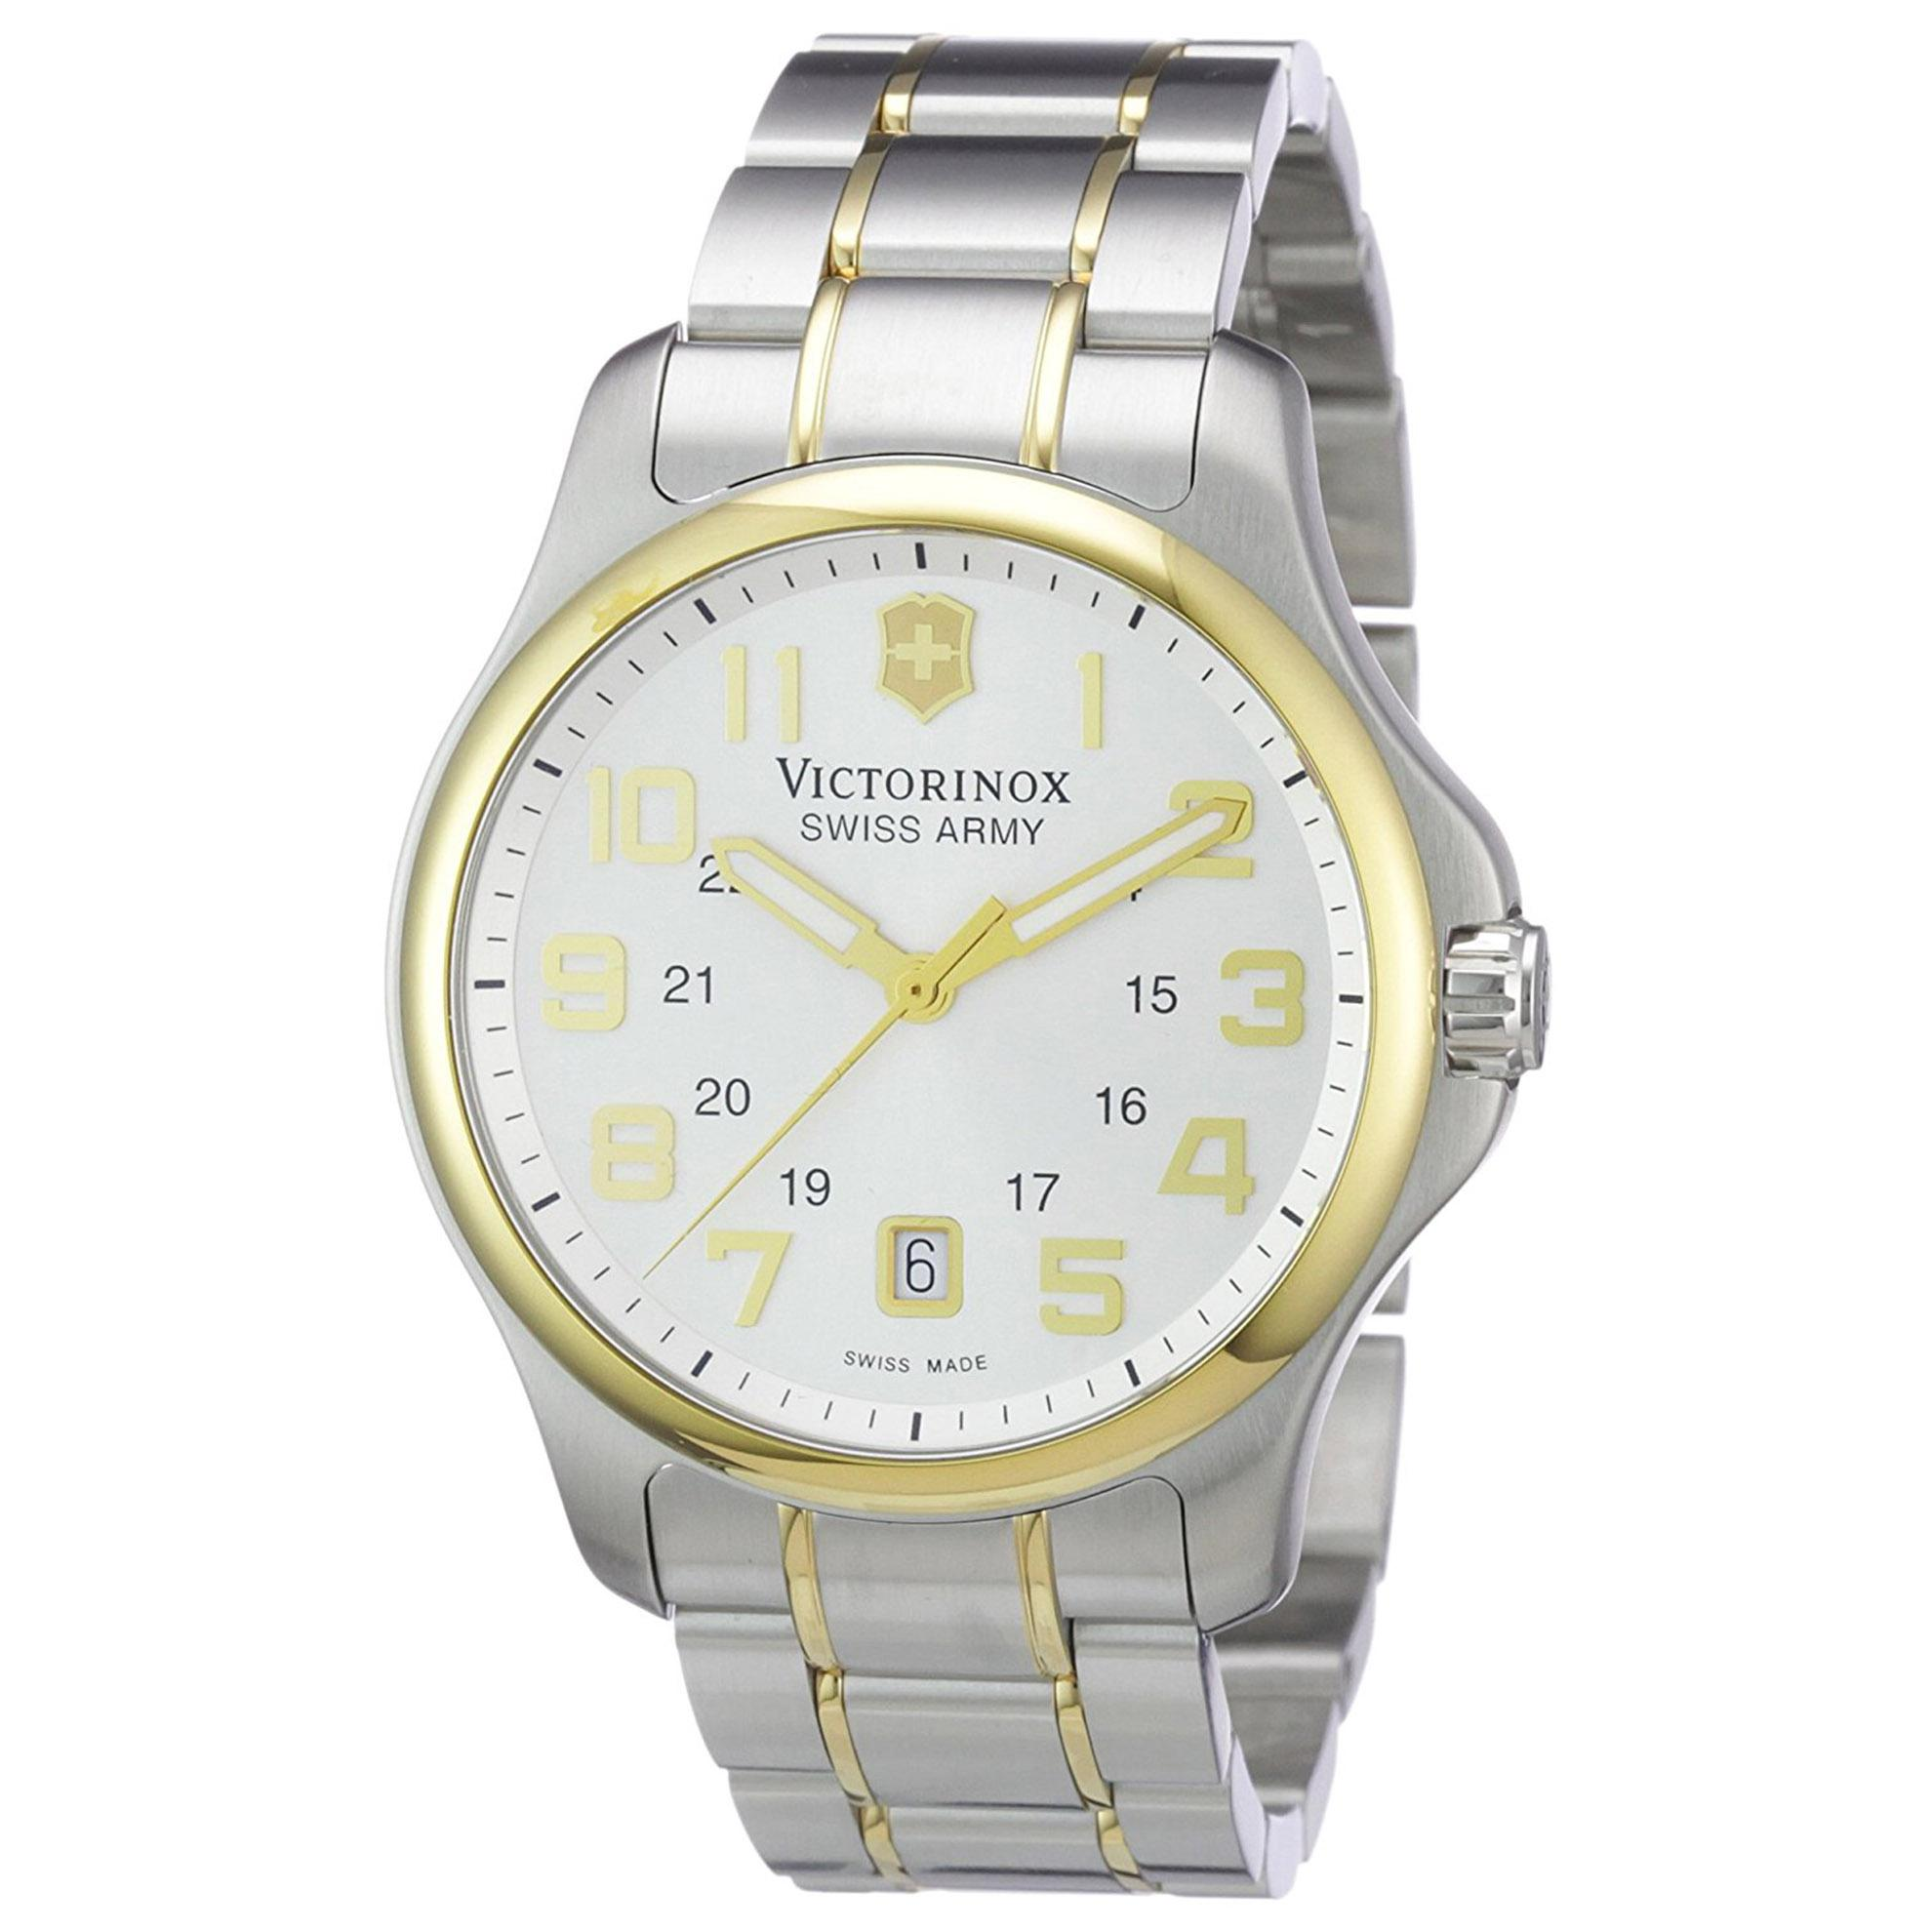 Victorinox 241362 Victorinox Swiss Army Officer Two-Tone Silver Dial